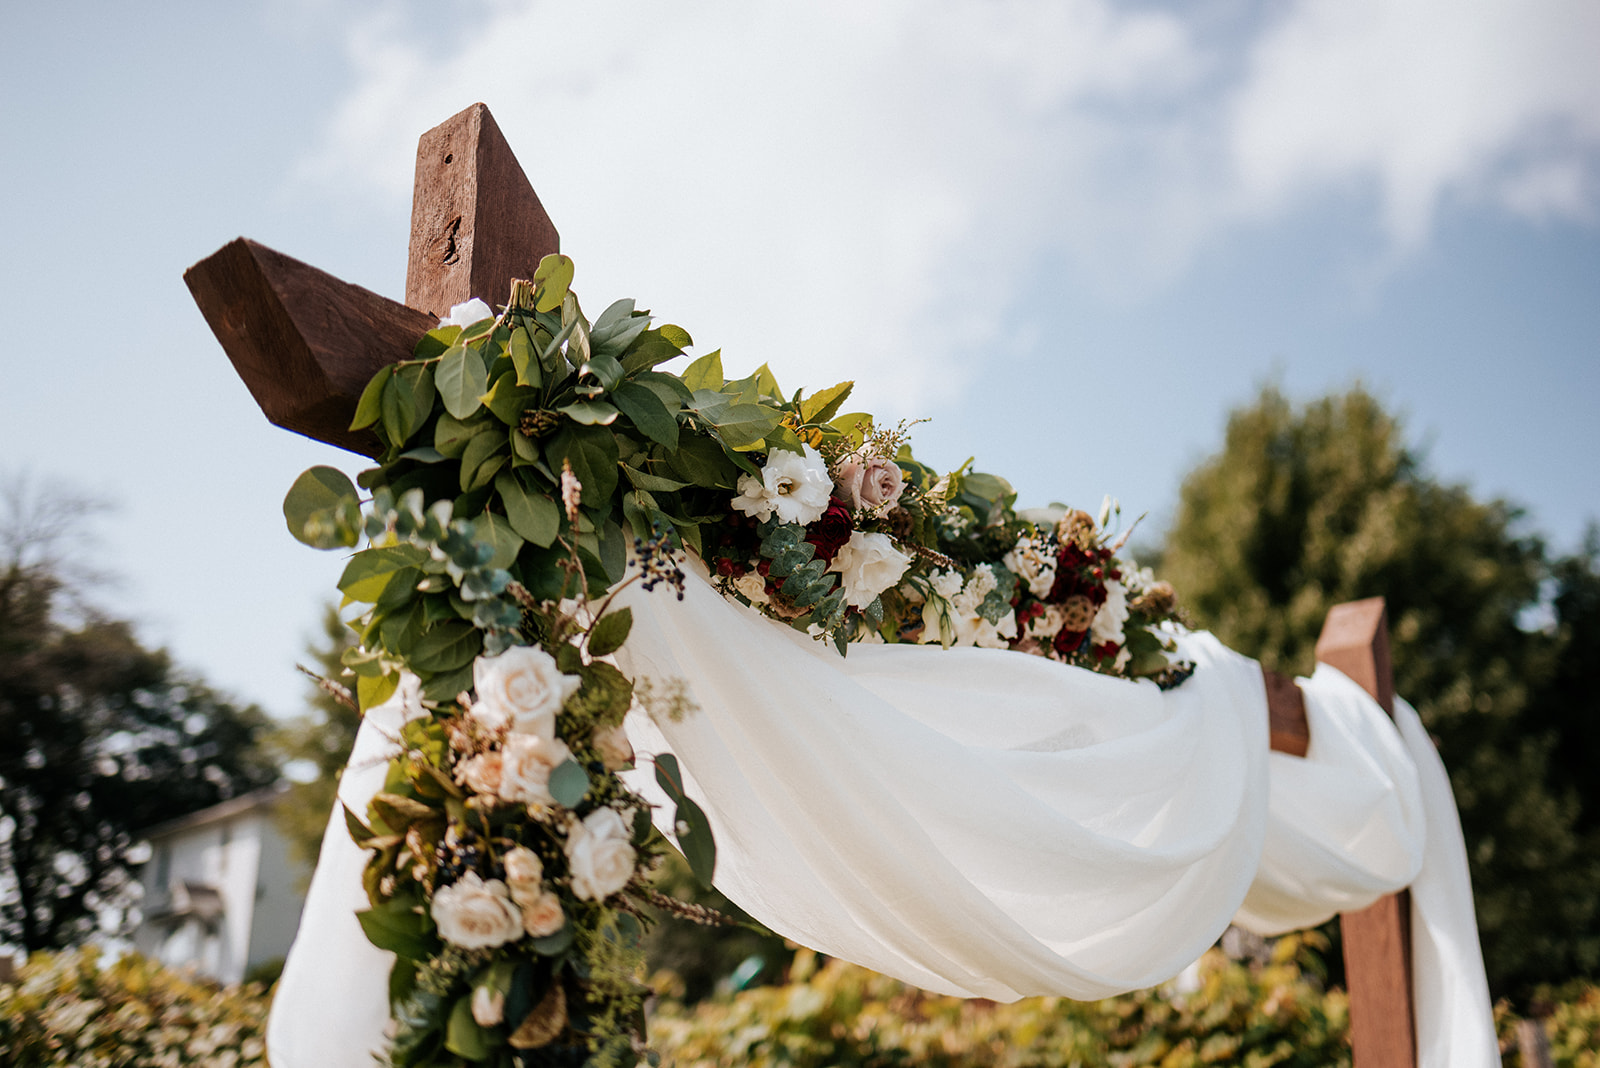 overthevineswisconsinwedding_0479.jpg